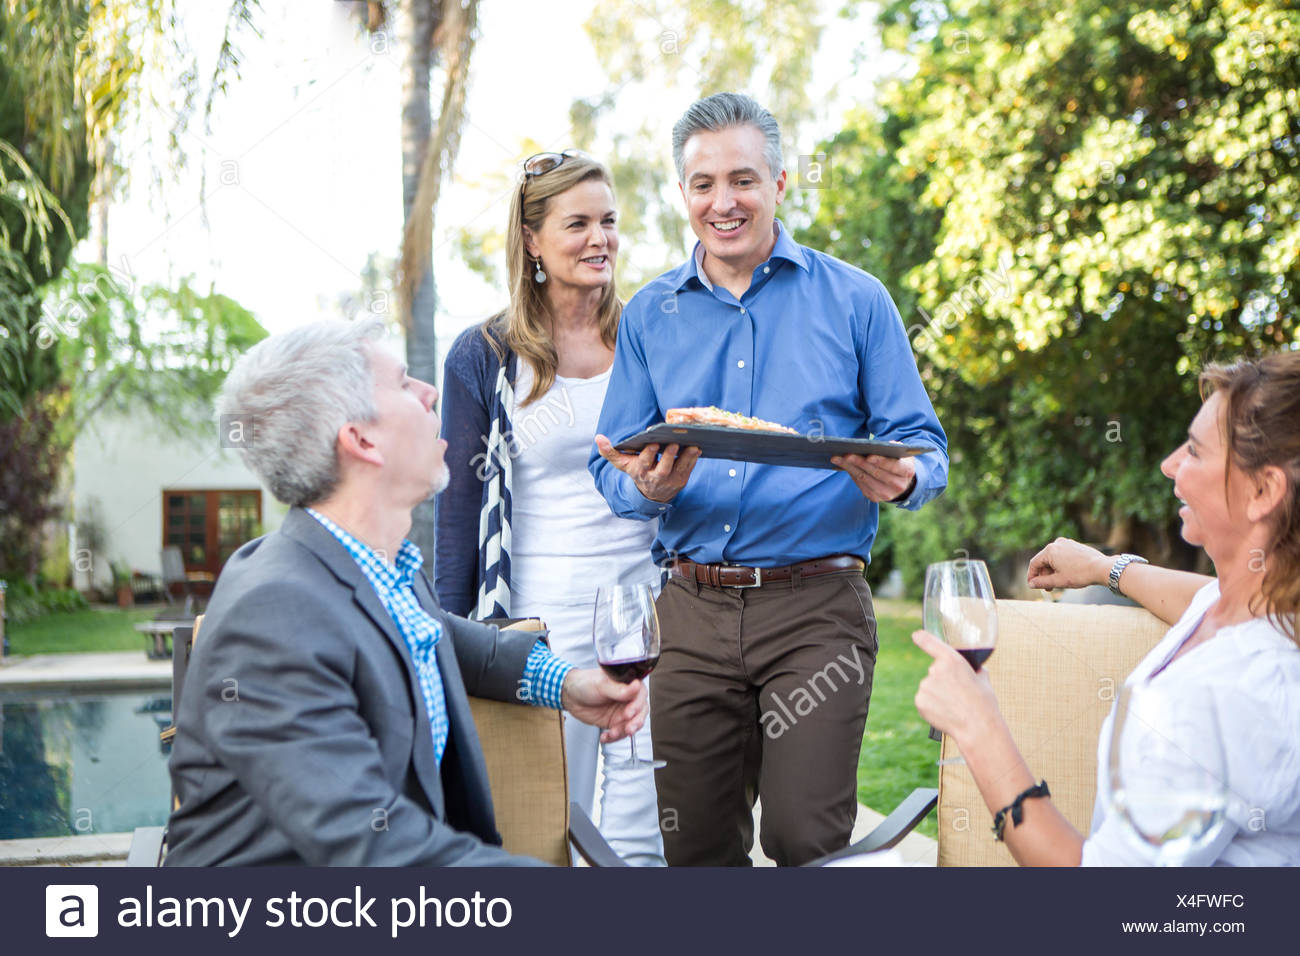 Mature man serving fish cuisine at garden party - Stock Image